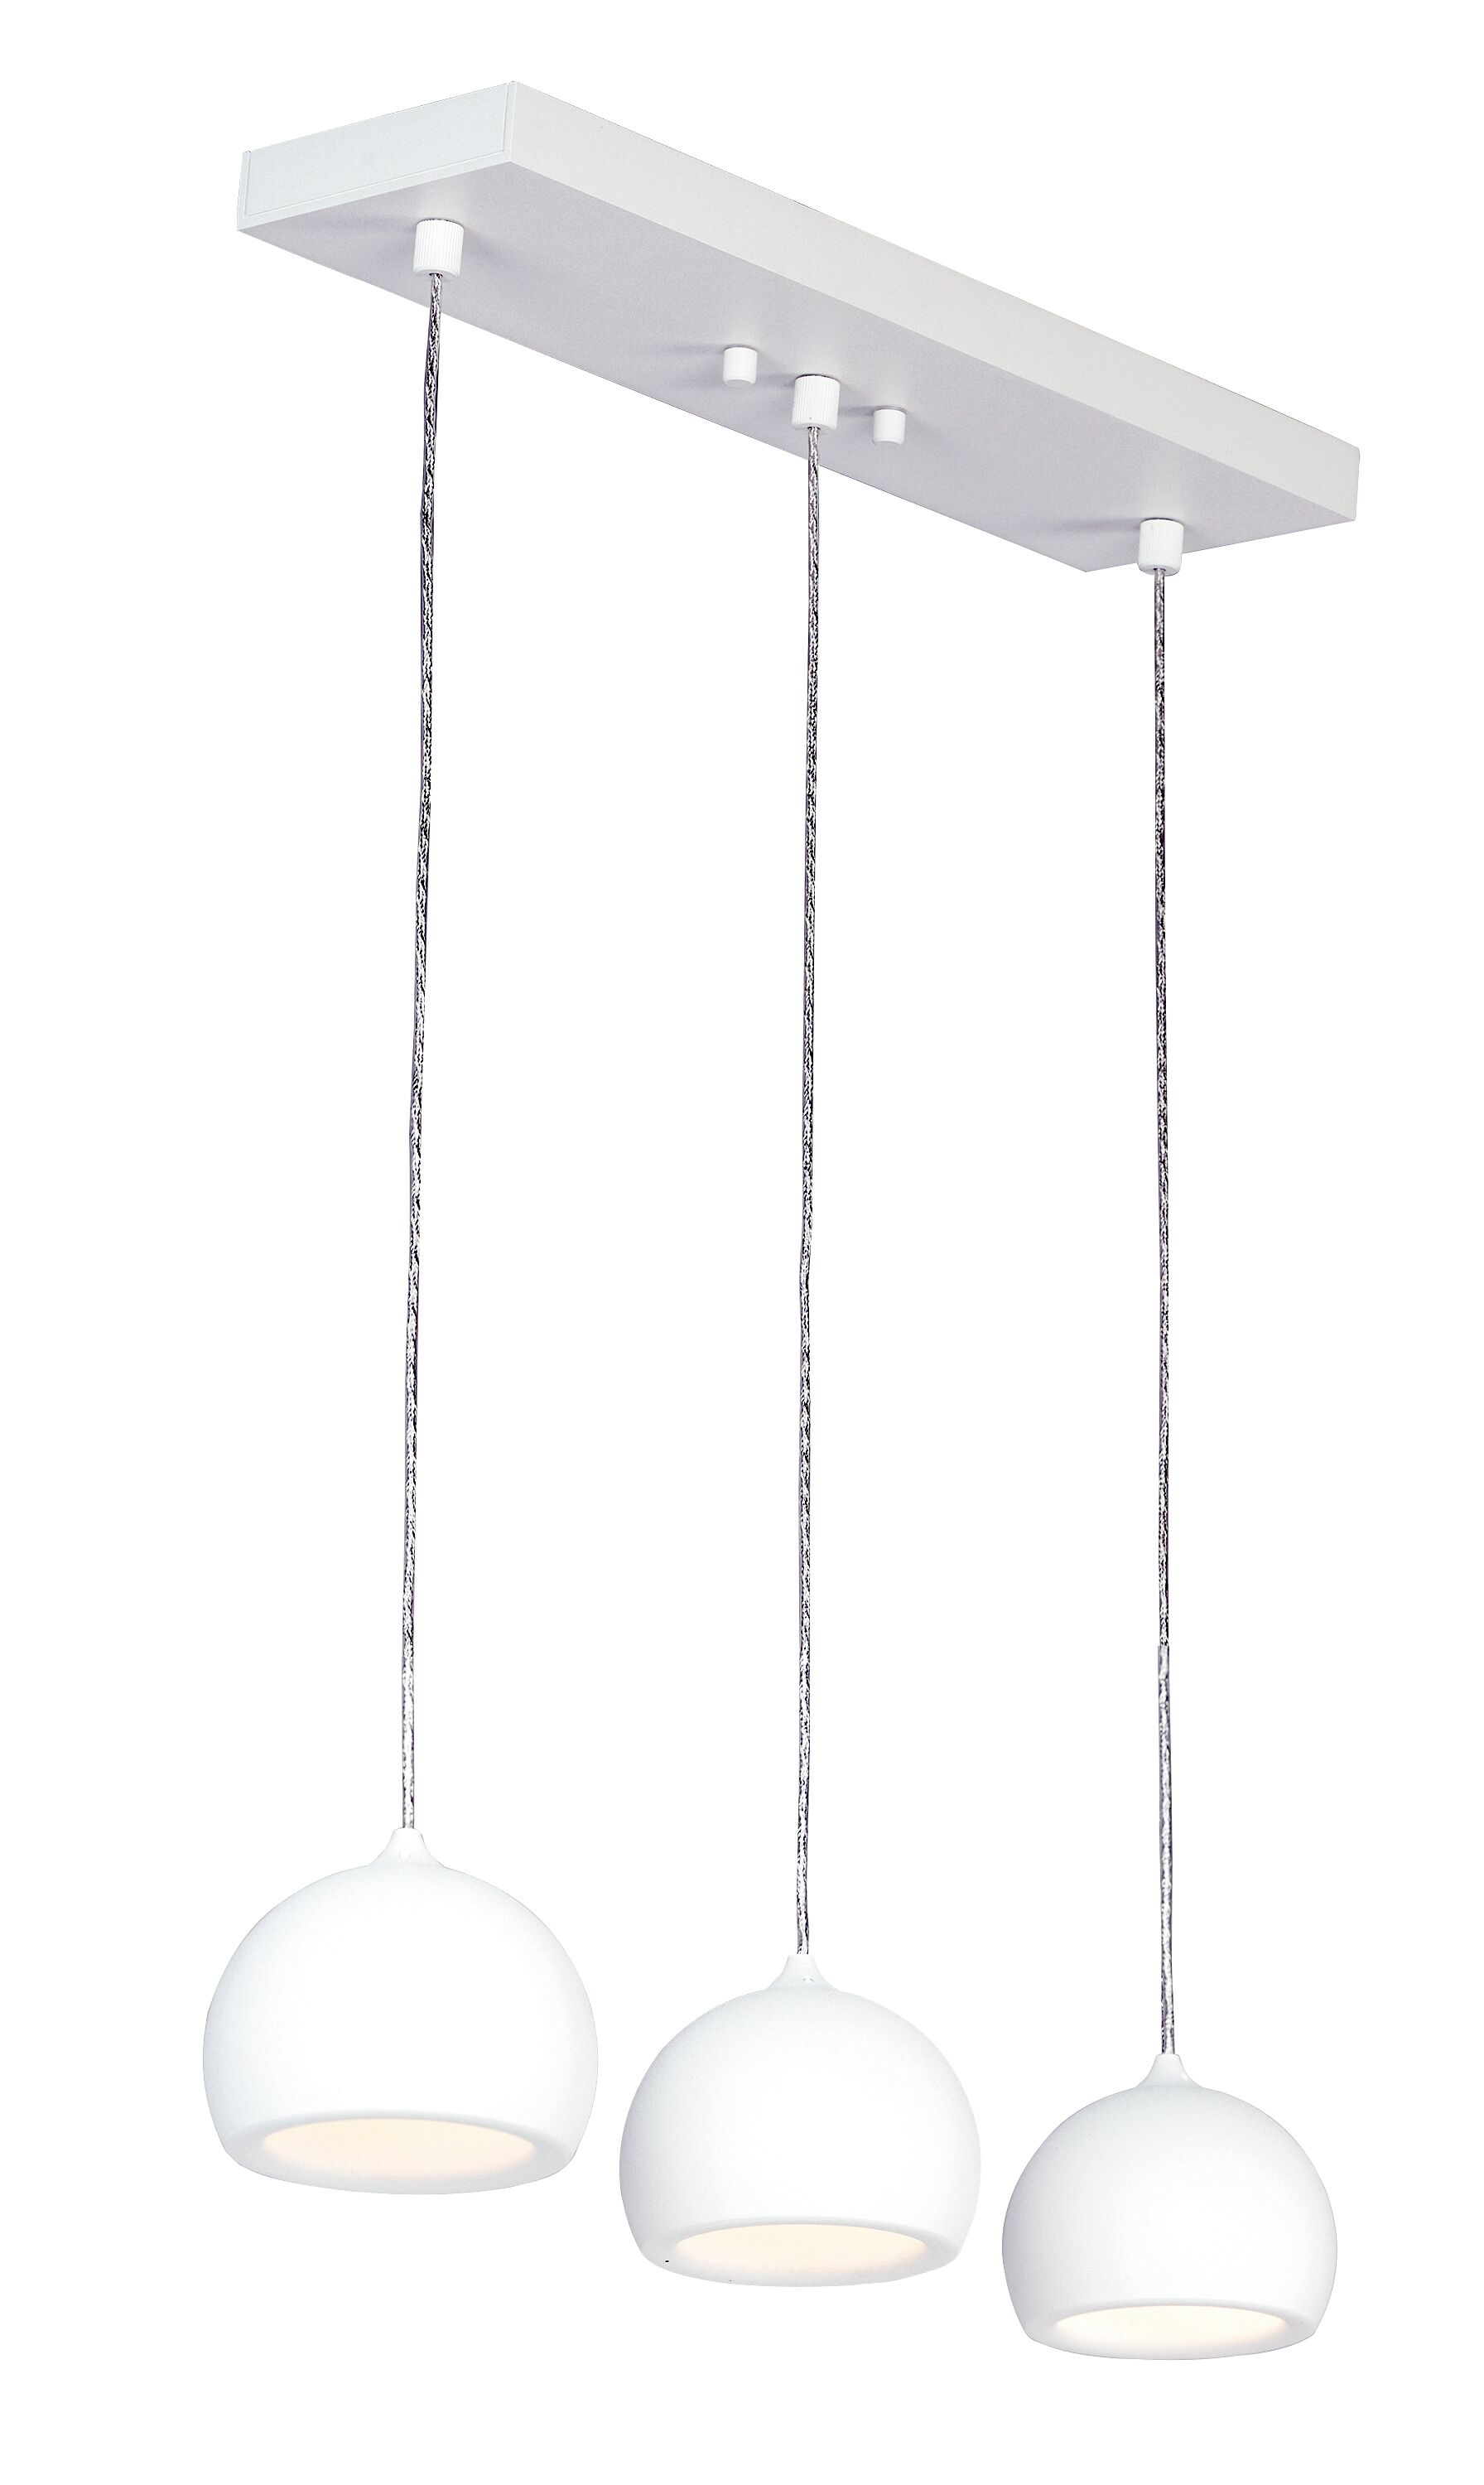 Mahpee 3-Light LED Kitchen Island Pendant